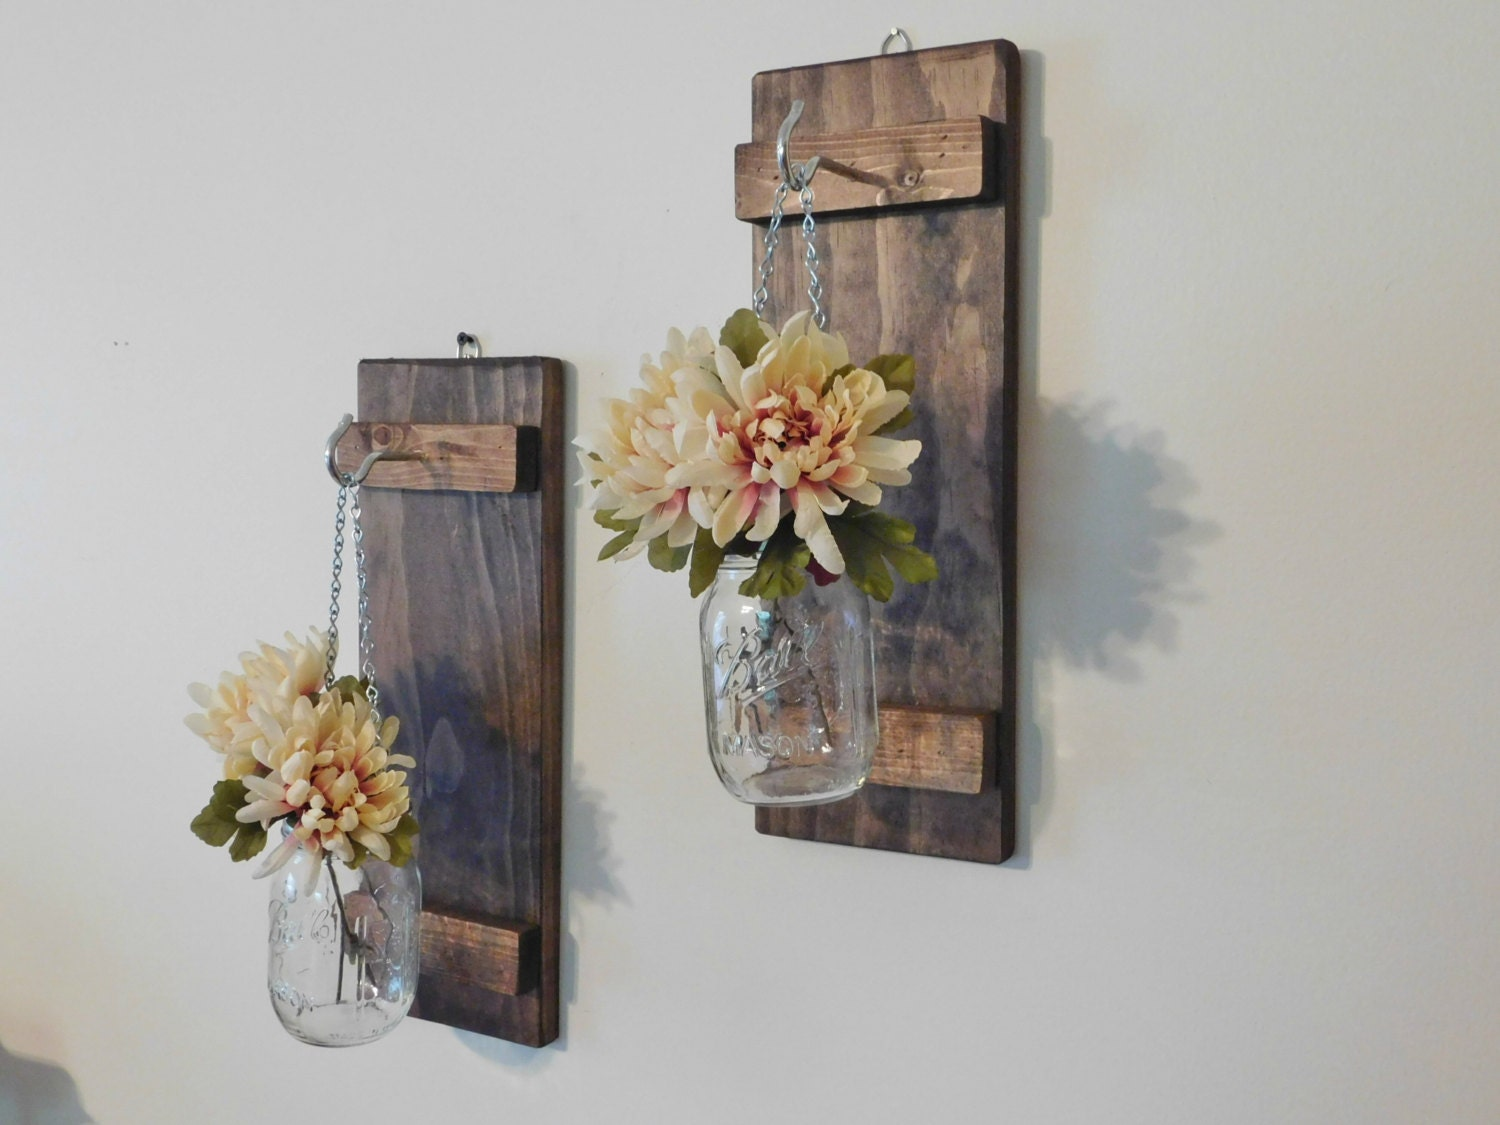 Wall vases for flowers - Hanging Mason Jar Wall Sconce Flower Vase Candle Sconce Wall Mounted Rustic Decor